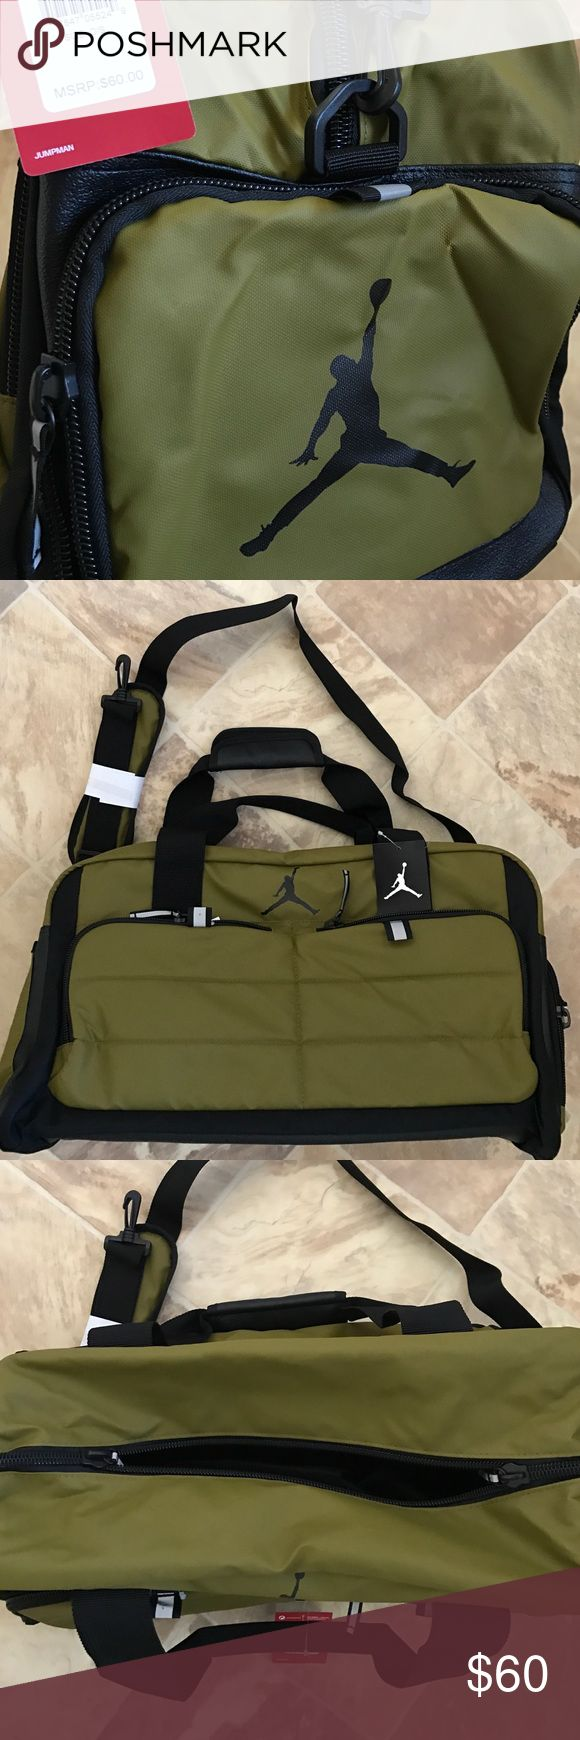 Nike Air Jordan Duffle Basketball Workout Gym Bag 100% authentic and brand new. The latest model!!! Color code: Military Green. The bottom is about 20 inches long and 10 inches wide including side pockets. Jordan Bags Duffel Bags